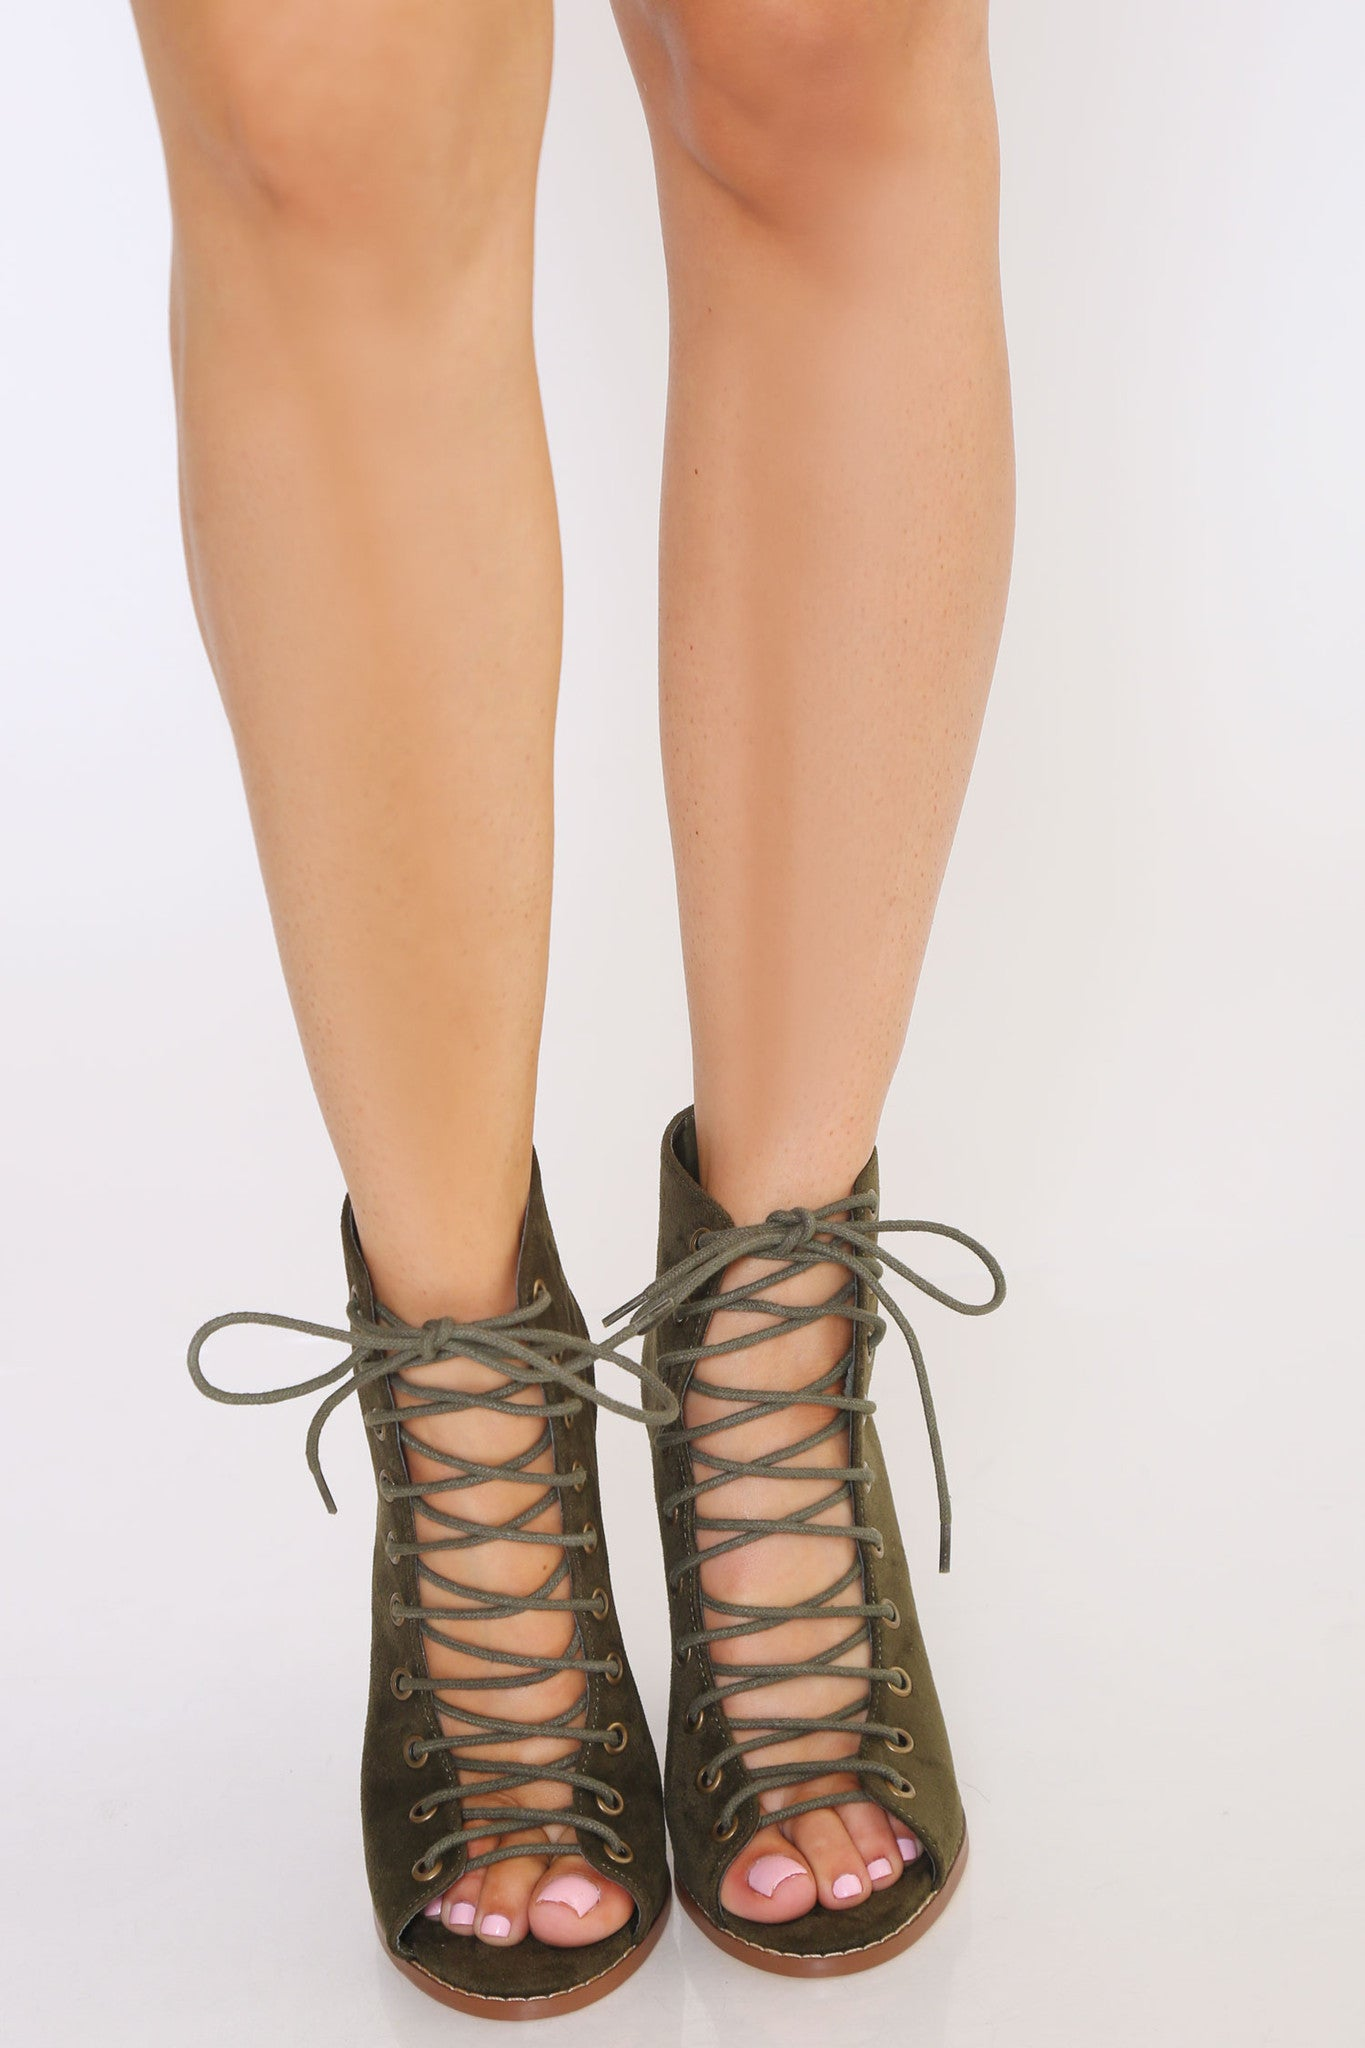 SHEELA LACE UP BOOTIES - Glam Envy - 2